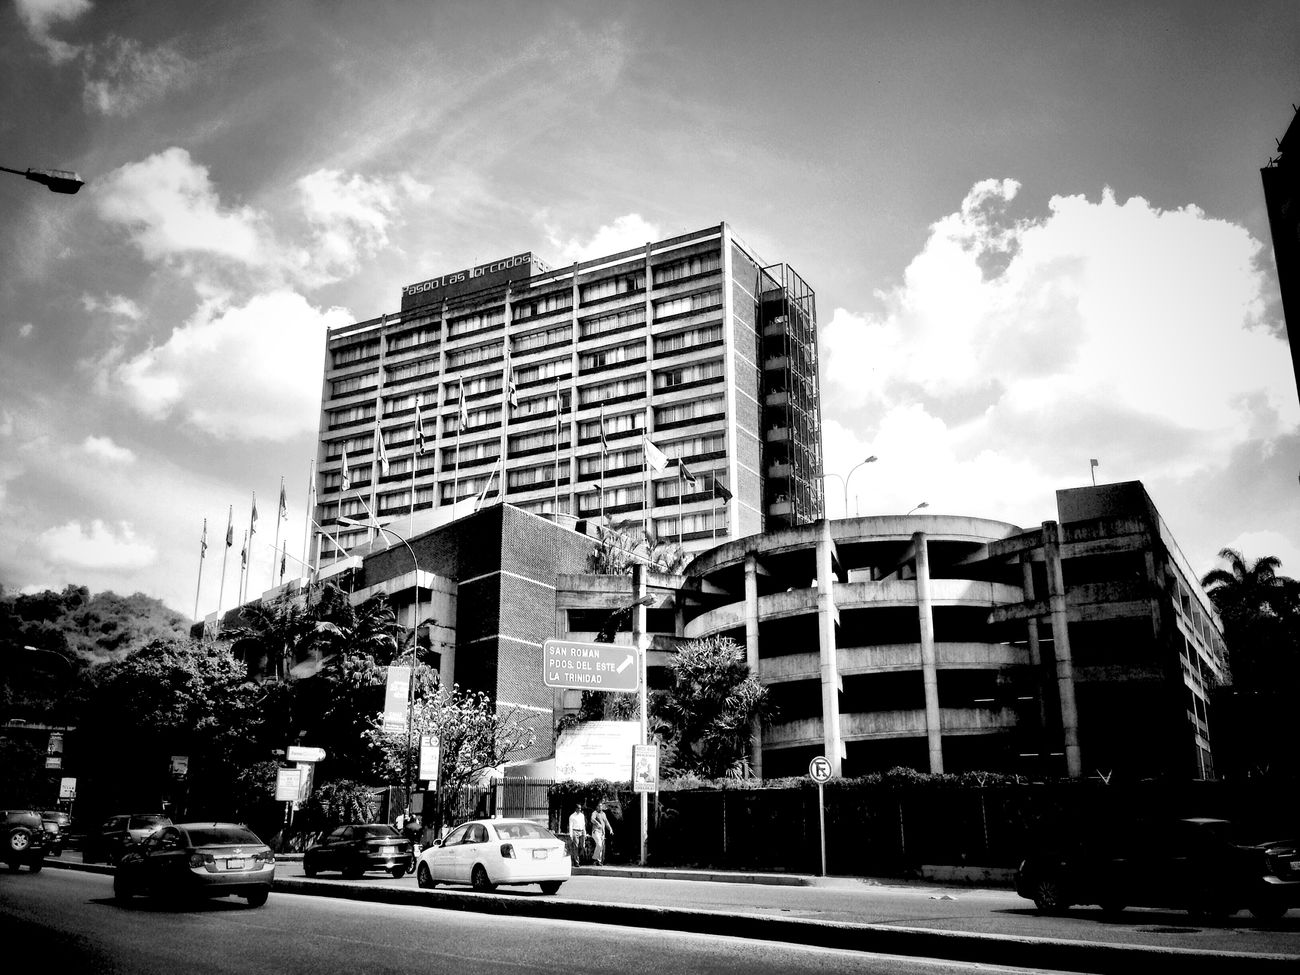 Streetphoto_bw Streetphotography Architecture_bw Caracas Blackandwhite Black And White Photography AMPt_community Monochrome Paseo Las Mercedes EyeEm Bnw